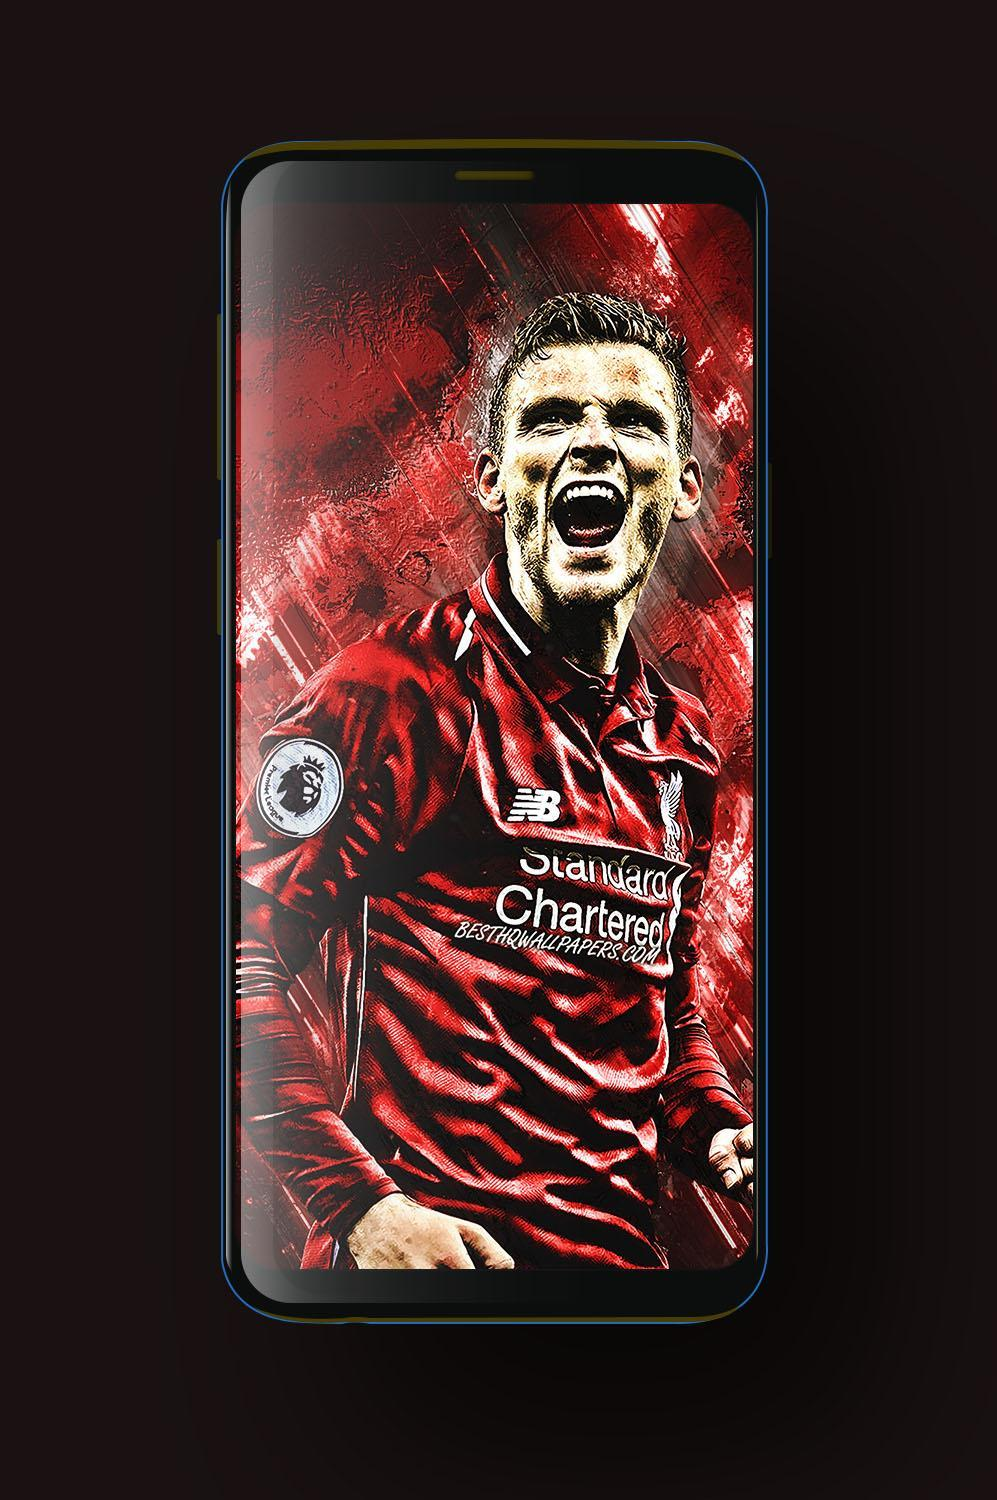 England Premier League Wallpaper Hd Gif For Android Apk Download